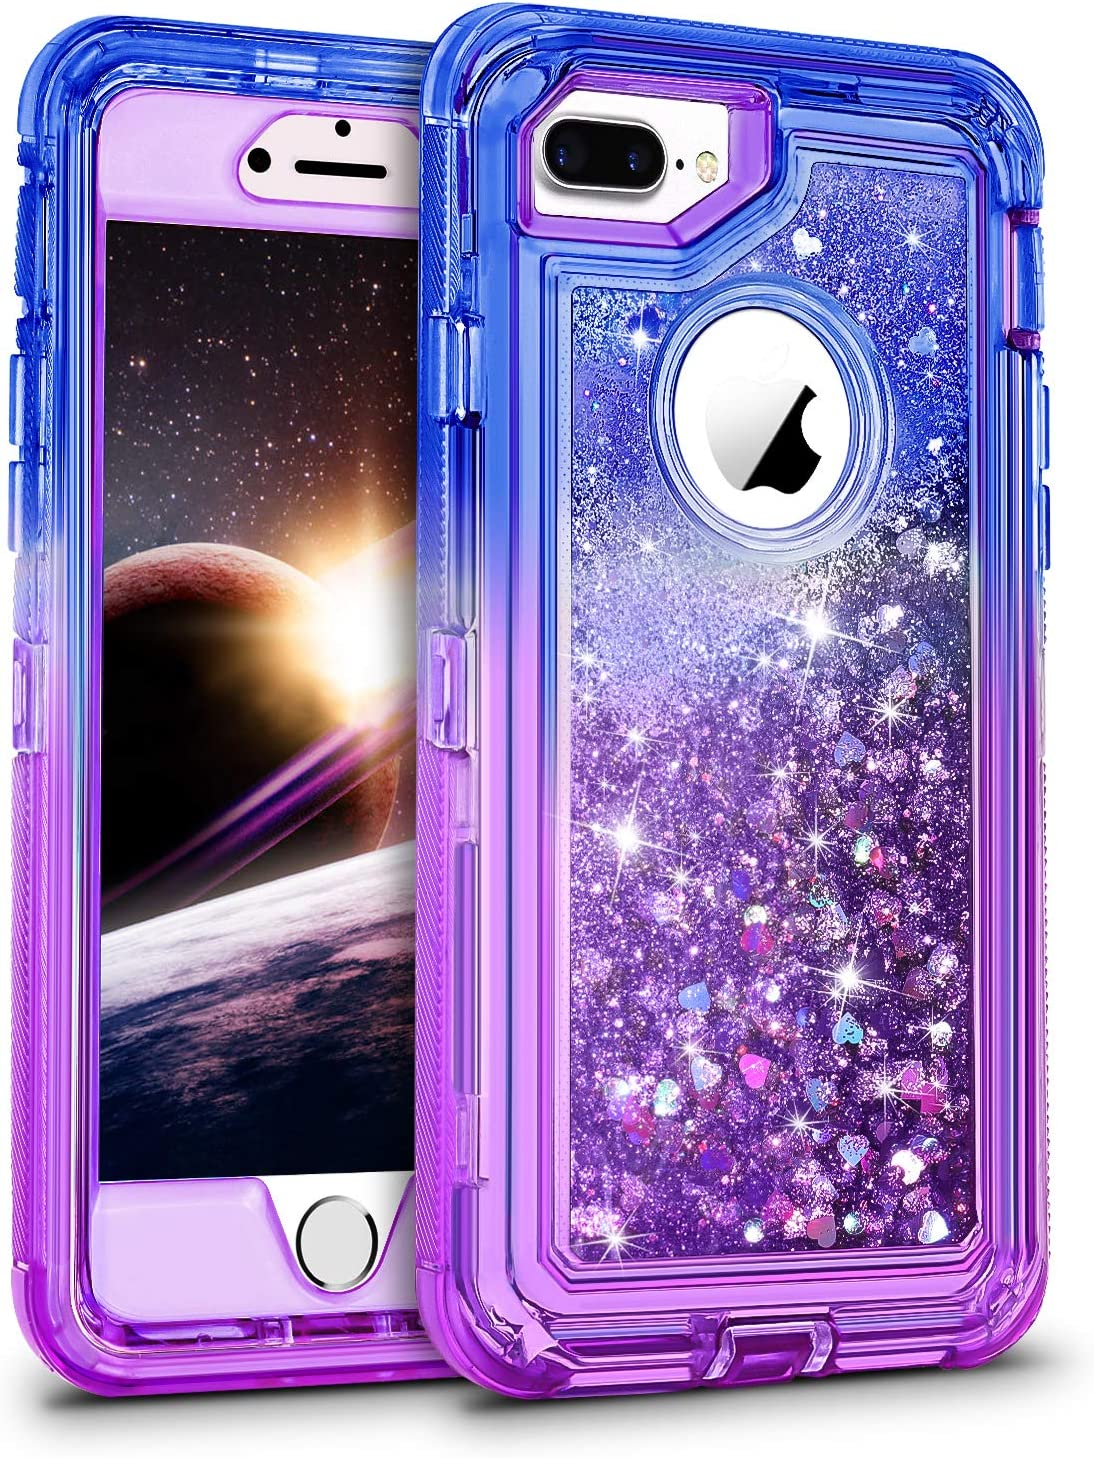 WESADN Case for iPhone 8 Plus Case,iPhone 7 Plus Case for Girls Women Cute Glitter Liquid Protective Bling Heavy Duty Shockproof Gradient Cover for ...